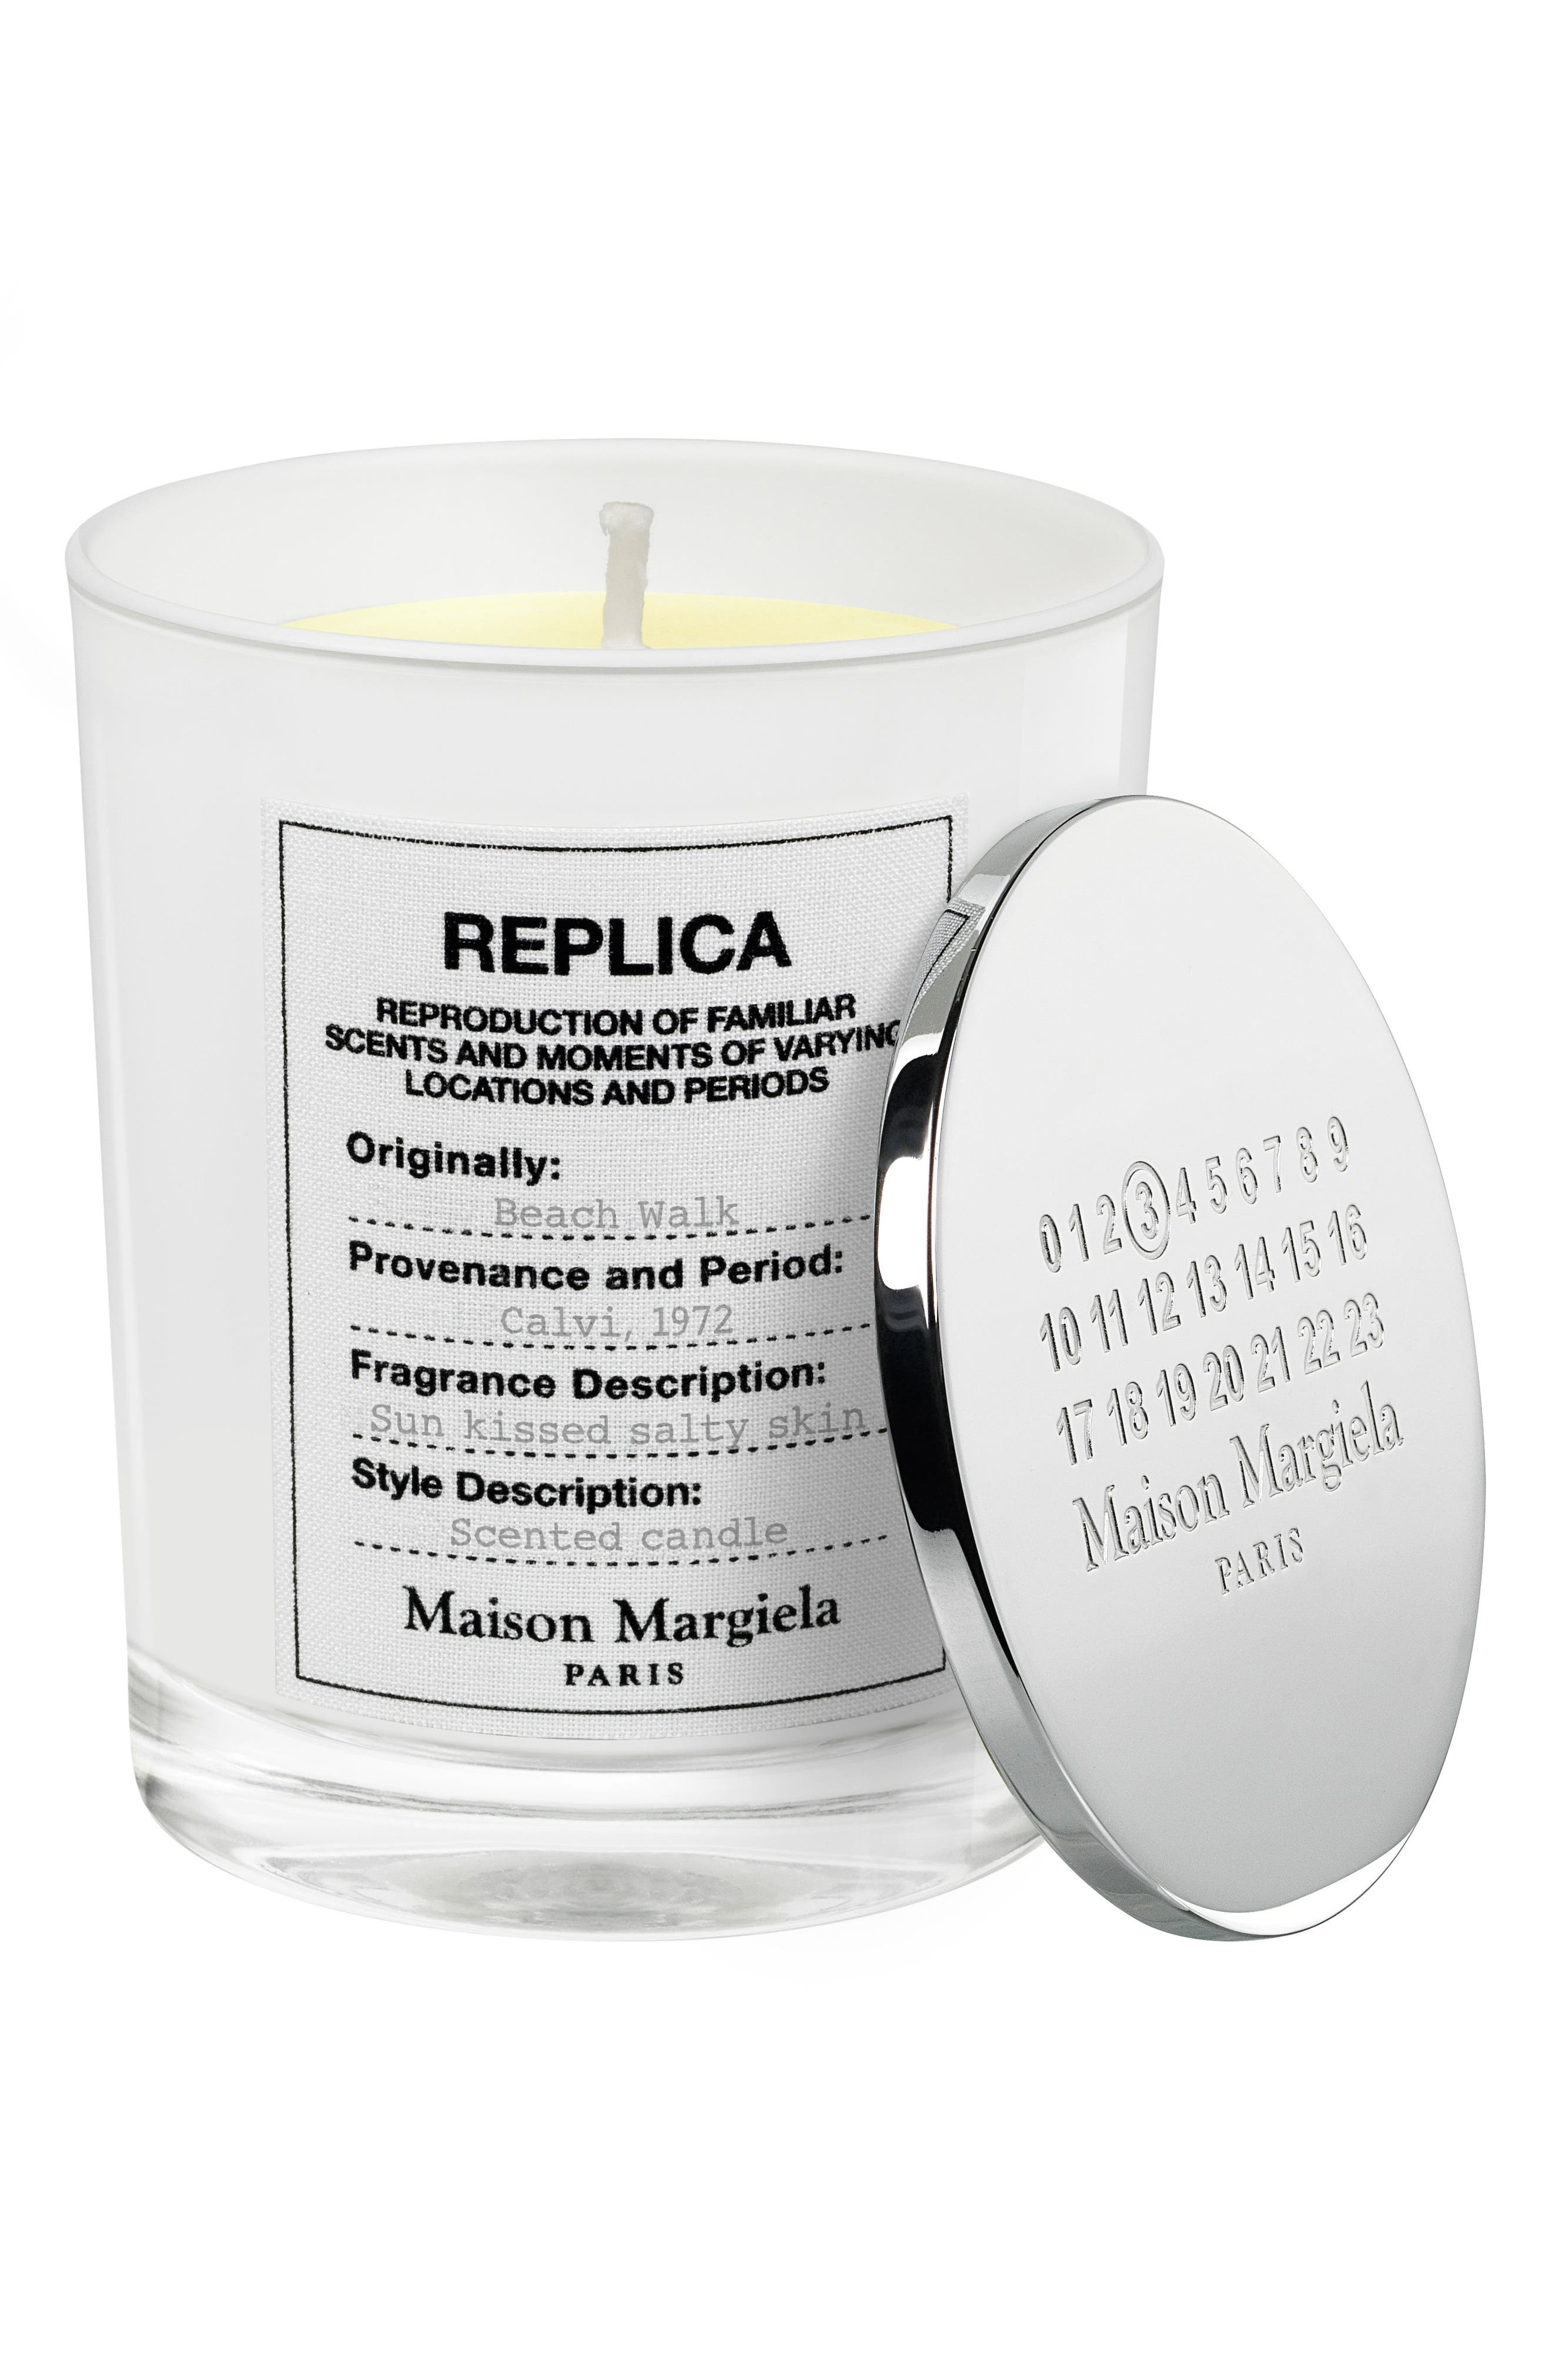 Replica Beach Walk Scented Candle,                             Alternate thumbnail 2, color,                             000